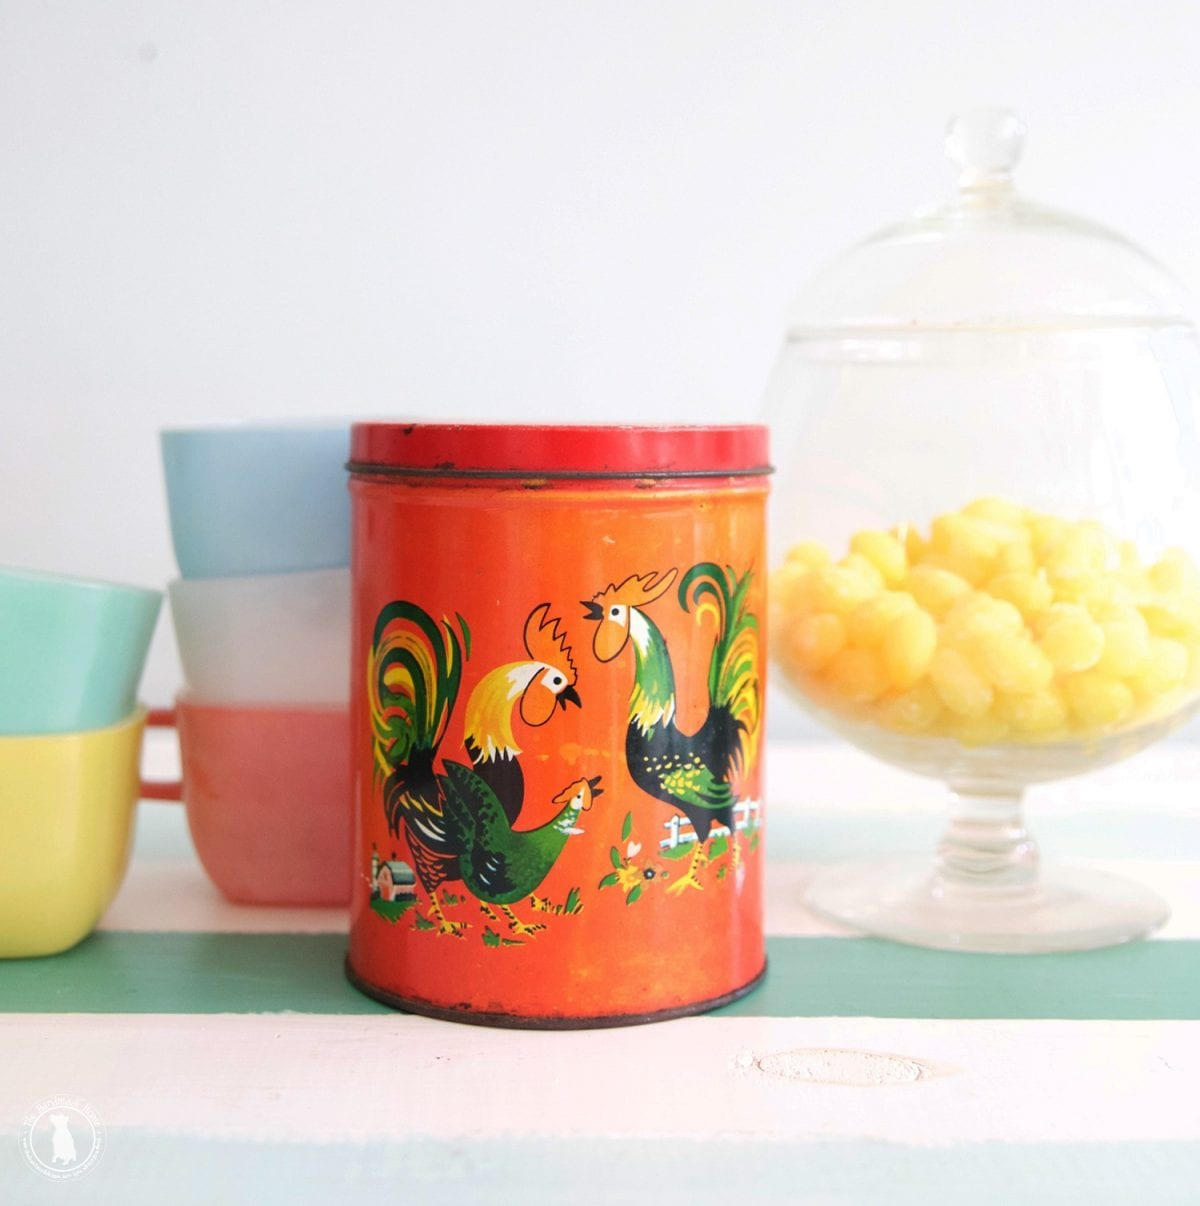 rowdy the rooster kitchen canister the handmade home rooster country french hand painted 4 piece square